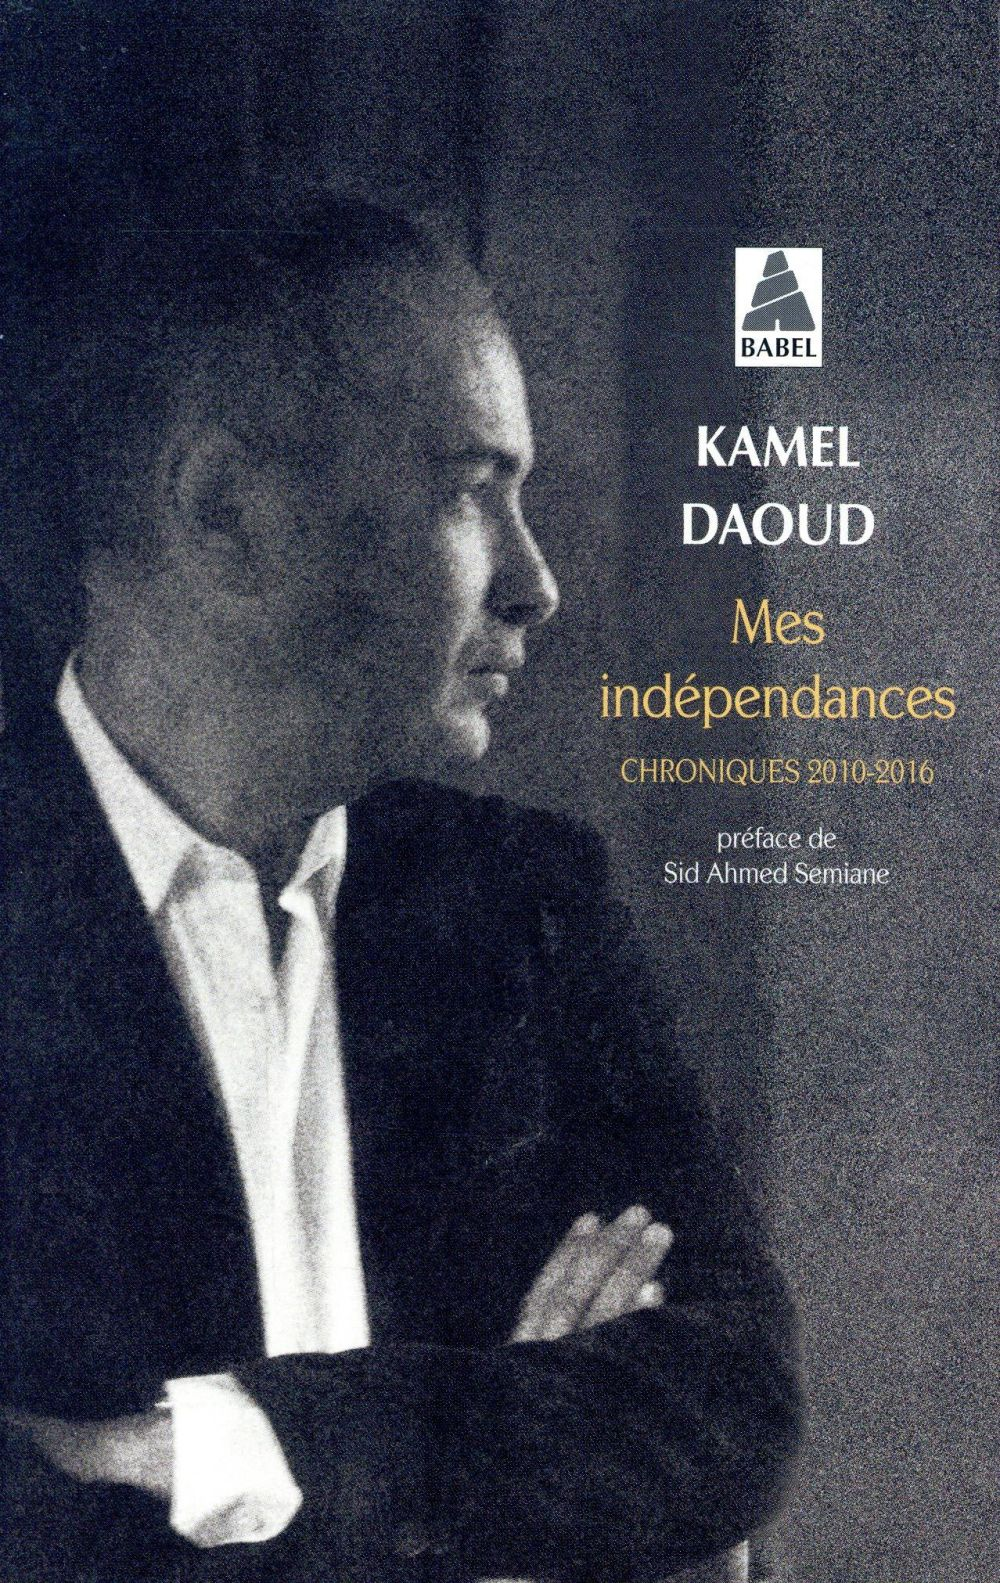 MES INDEPENDANCES (BABEL) - CH DAOUD KAMEL ACTES SUD